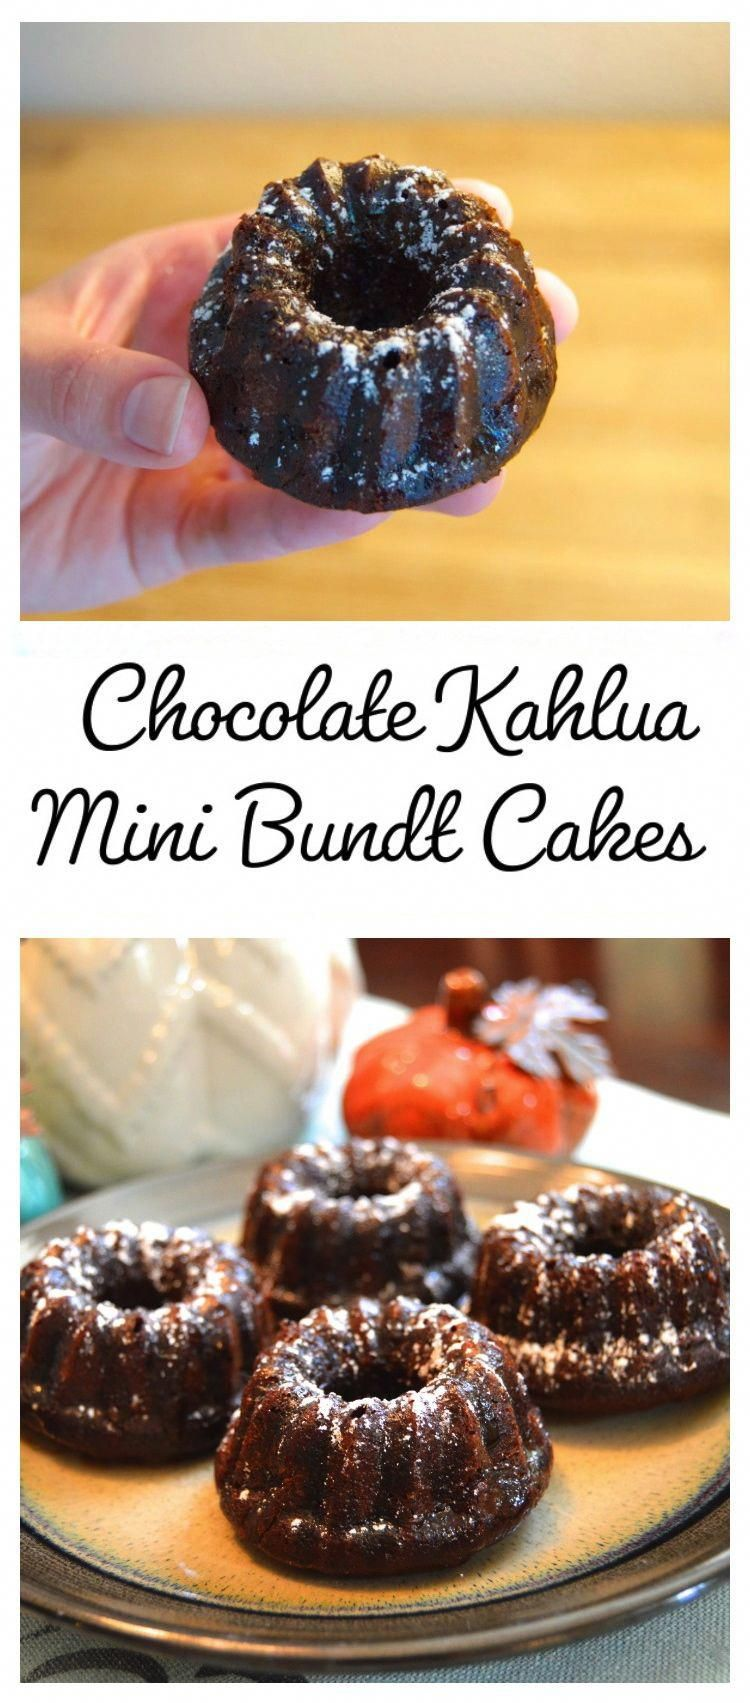 Chocolate Kahlua Mini Bundt Cake Recipe | In a Nutshell... or Two